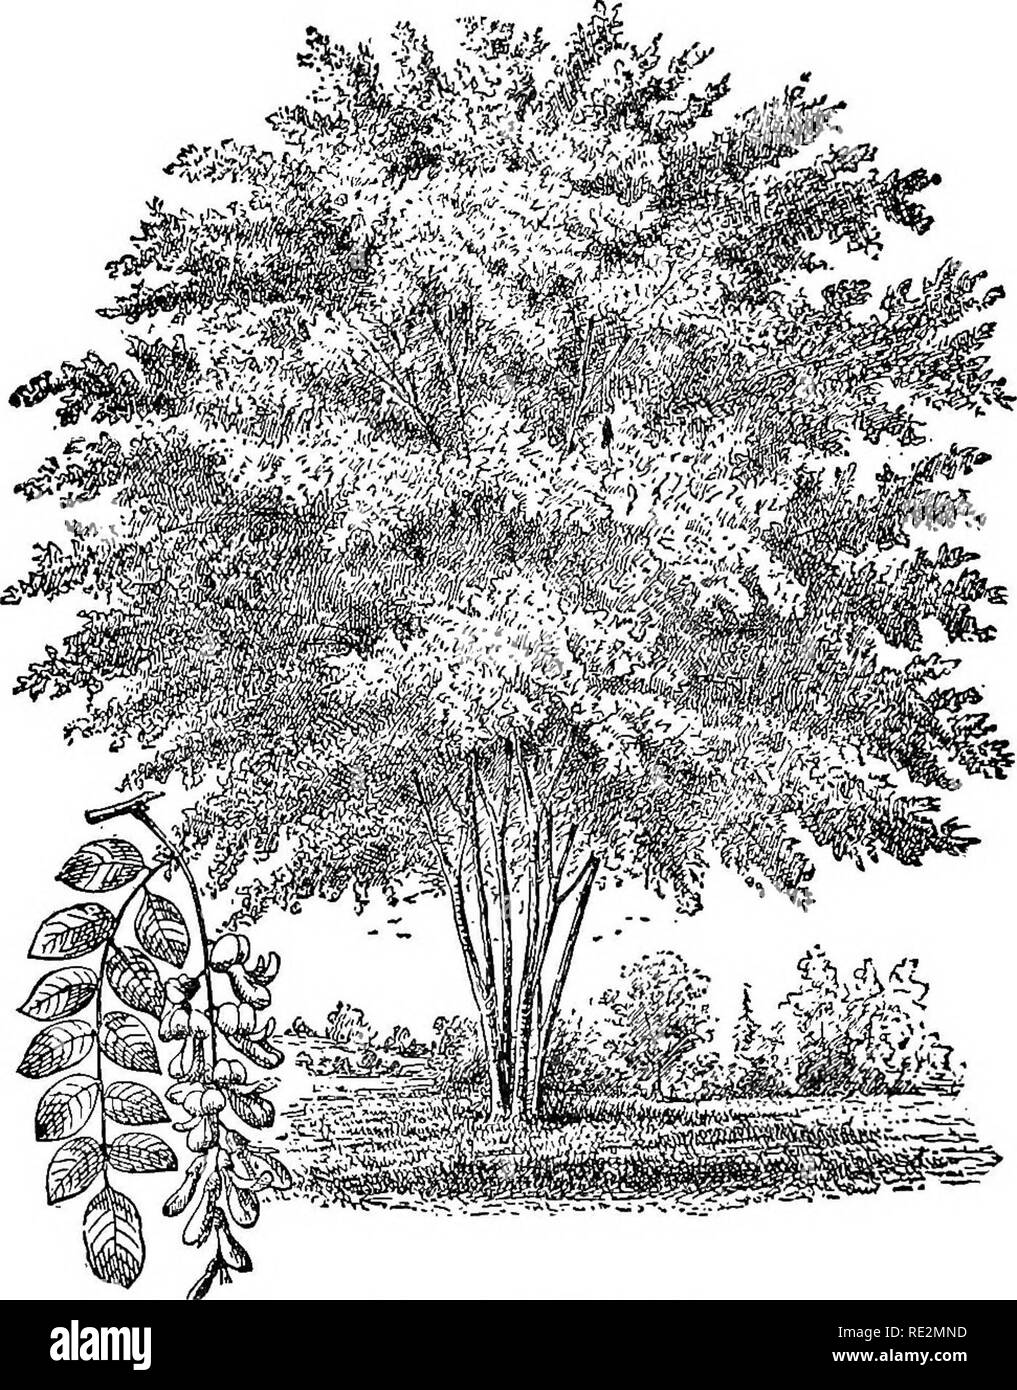 . American horticultural manual ... Gardening; Gardening; Fruit-culture. 342 HORTICULTURAL MAXUAL. thick, corky bark and elegant pinnate foliage three or four feet long gives variety to a tree group. The horse-chestnut family is exceedingly varied, and. Pia. 93.—Yellow-wood {Cladastris tinctoria). some of its members are hardy over nearly the whole Union. In the East and Southwest the ^Escuhis hippocastanum, or white-flowered horse-chestnut, is exteiisively planted for street, avenue, and park trees. The double-flowered vari-. Please note that these images are extracted from scanned page image - Stock Image